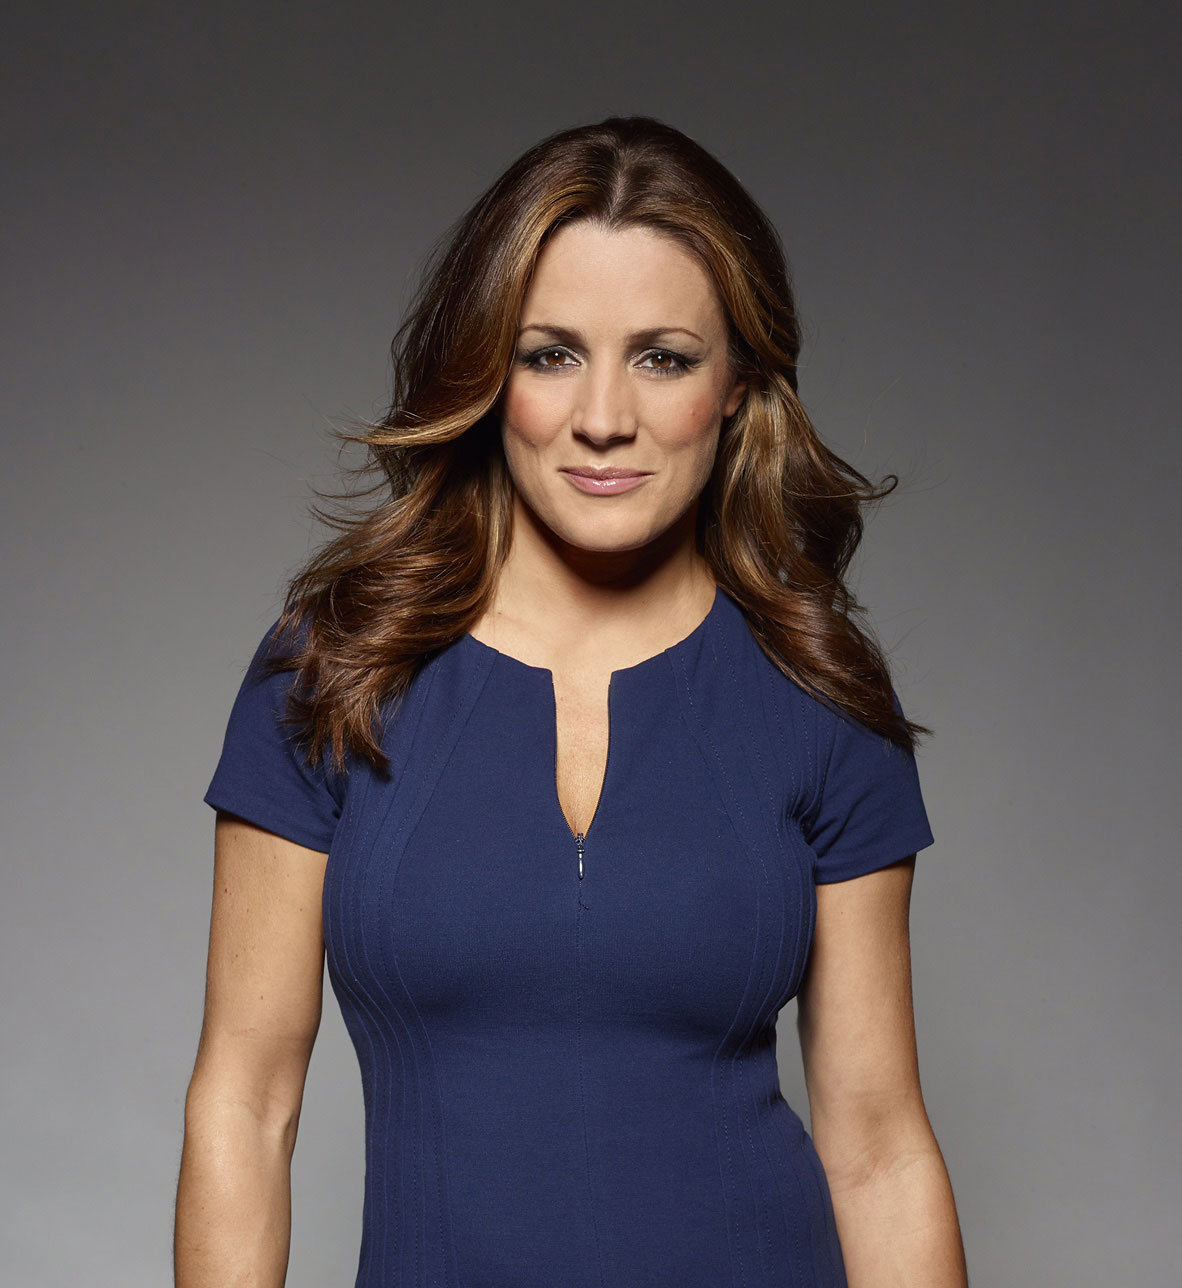 Natalie Pinkham naked (47 pictures), images Topless, Snapchat, underwear 2019